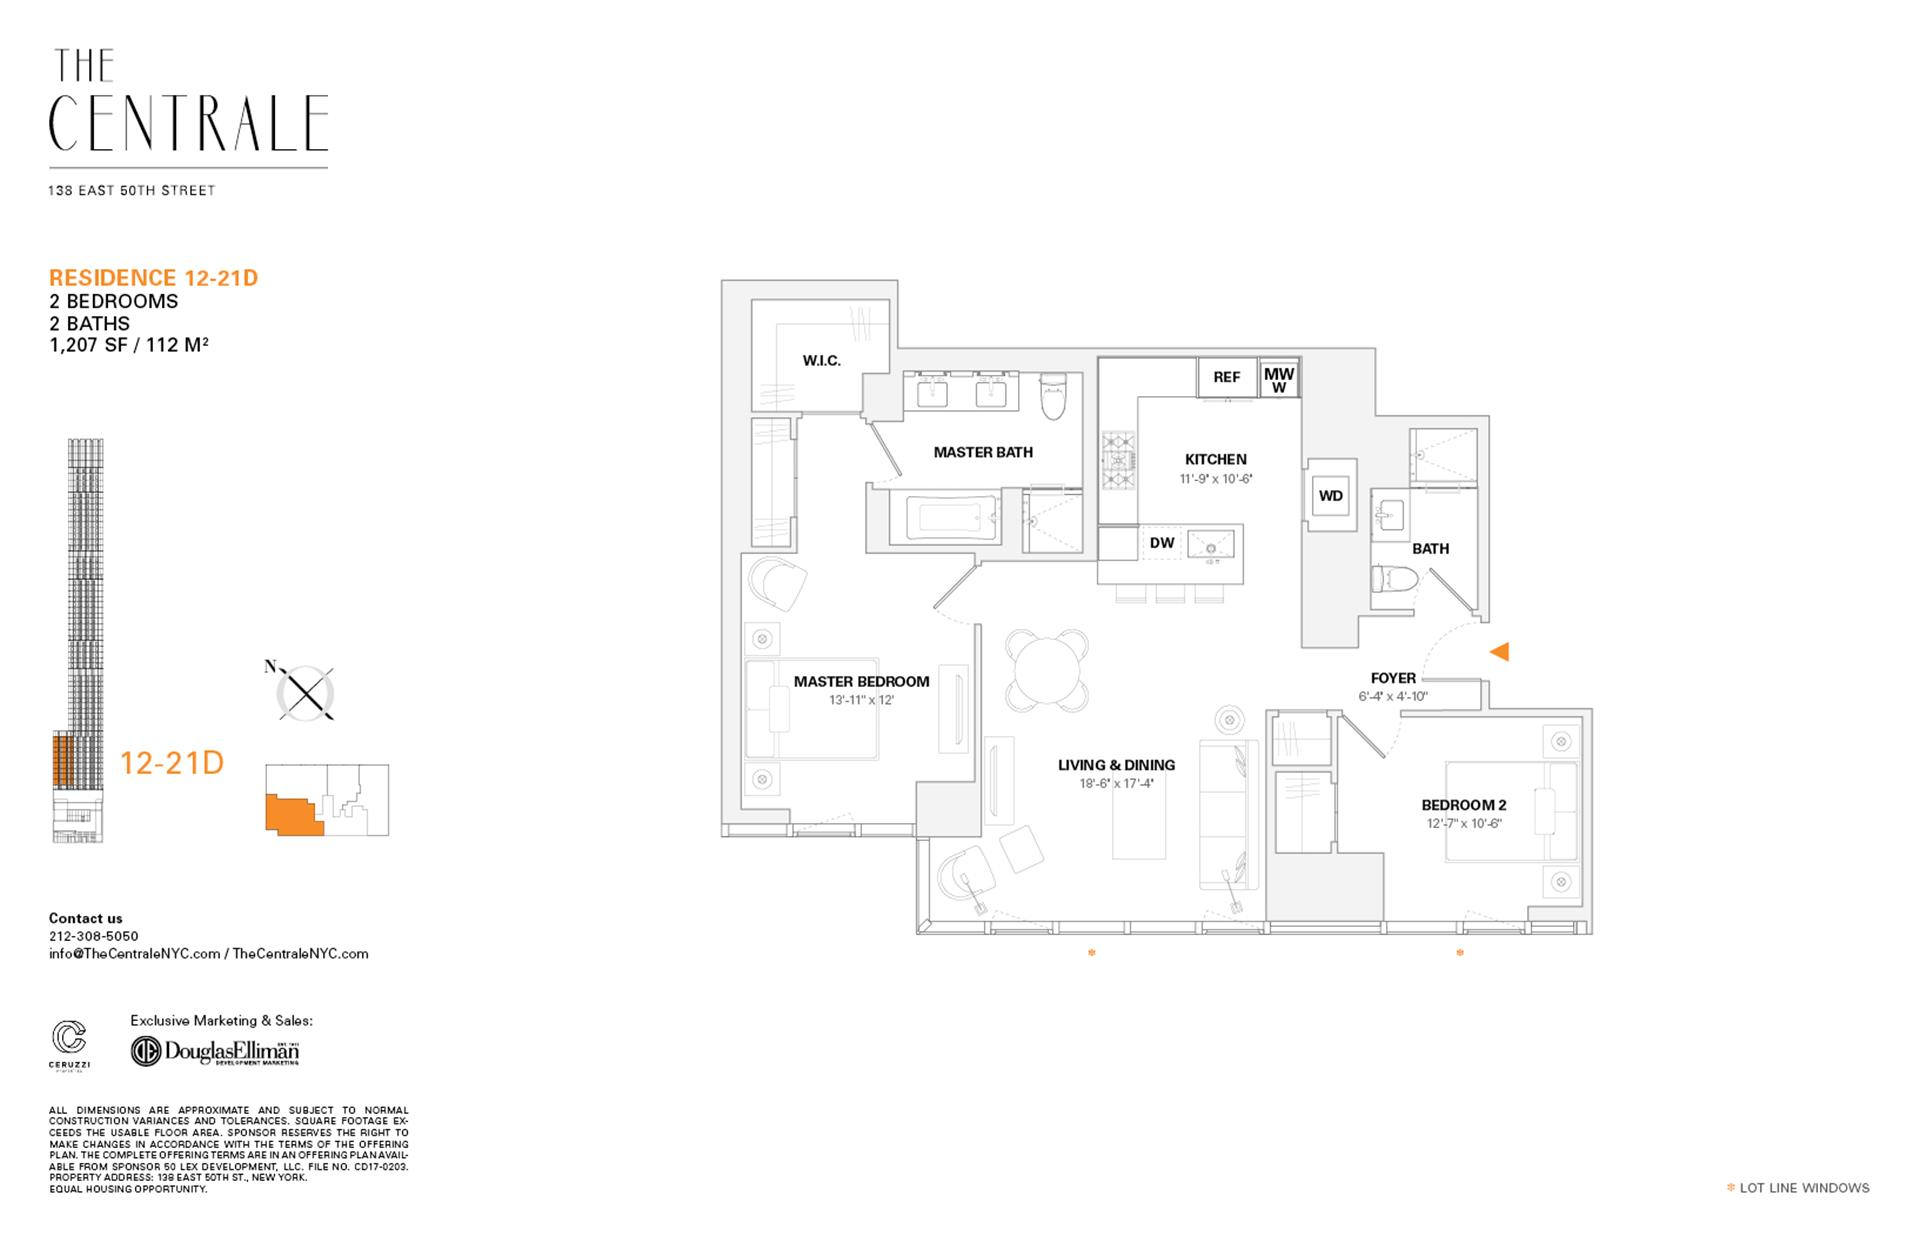 Floor plan of The Centrale, 138 East 50th Street, 21D - Midtown, New York